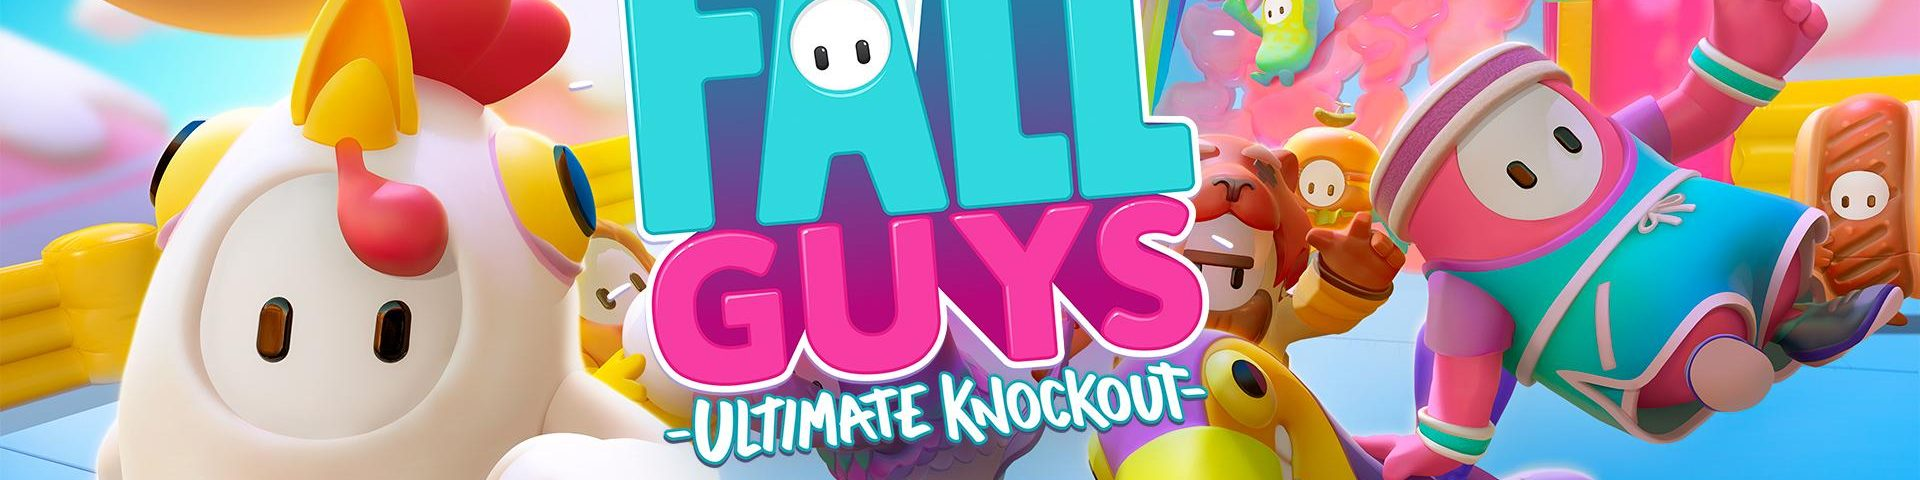 Fall Guys HD Wallpapers 4K Backgrounds